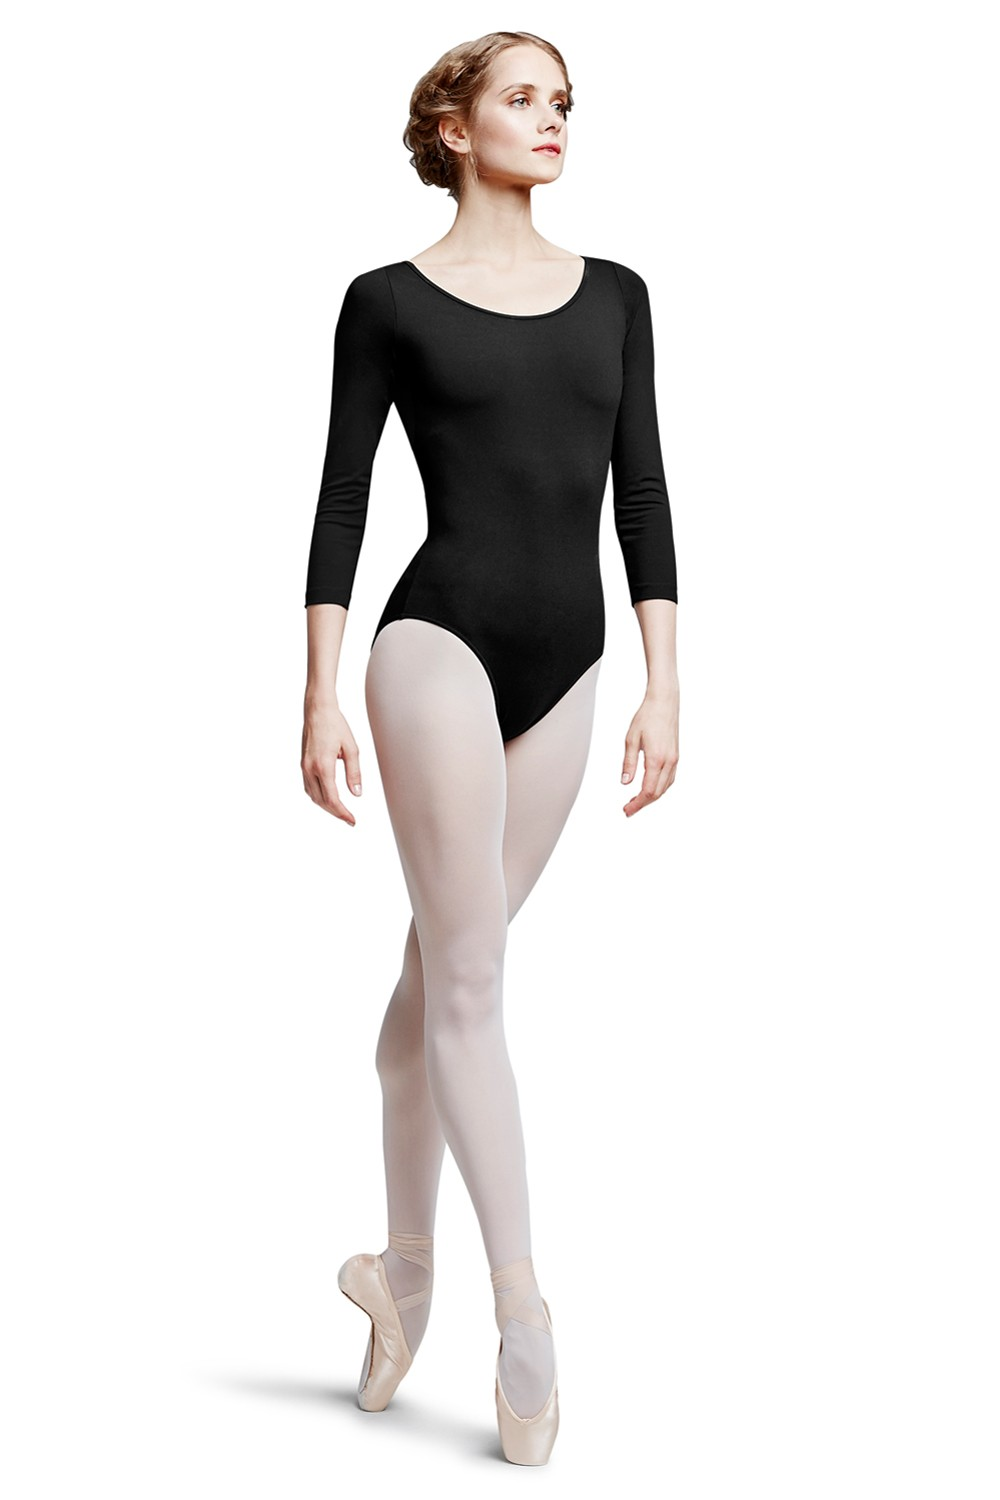 Marula Women's Dance Leotards